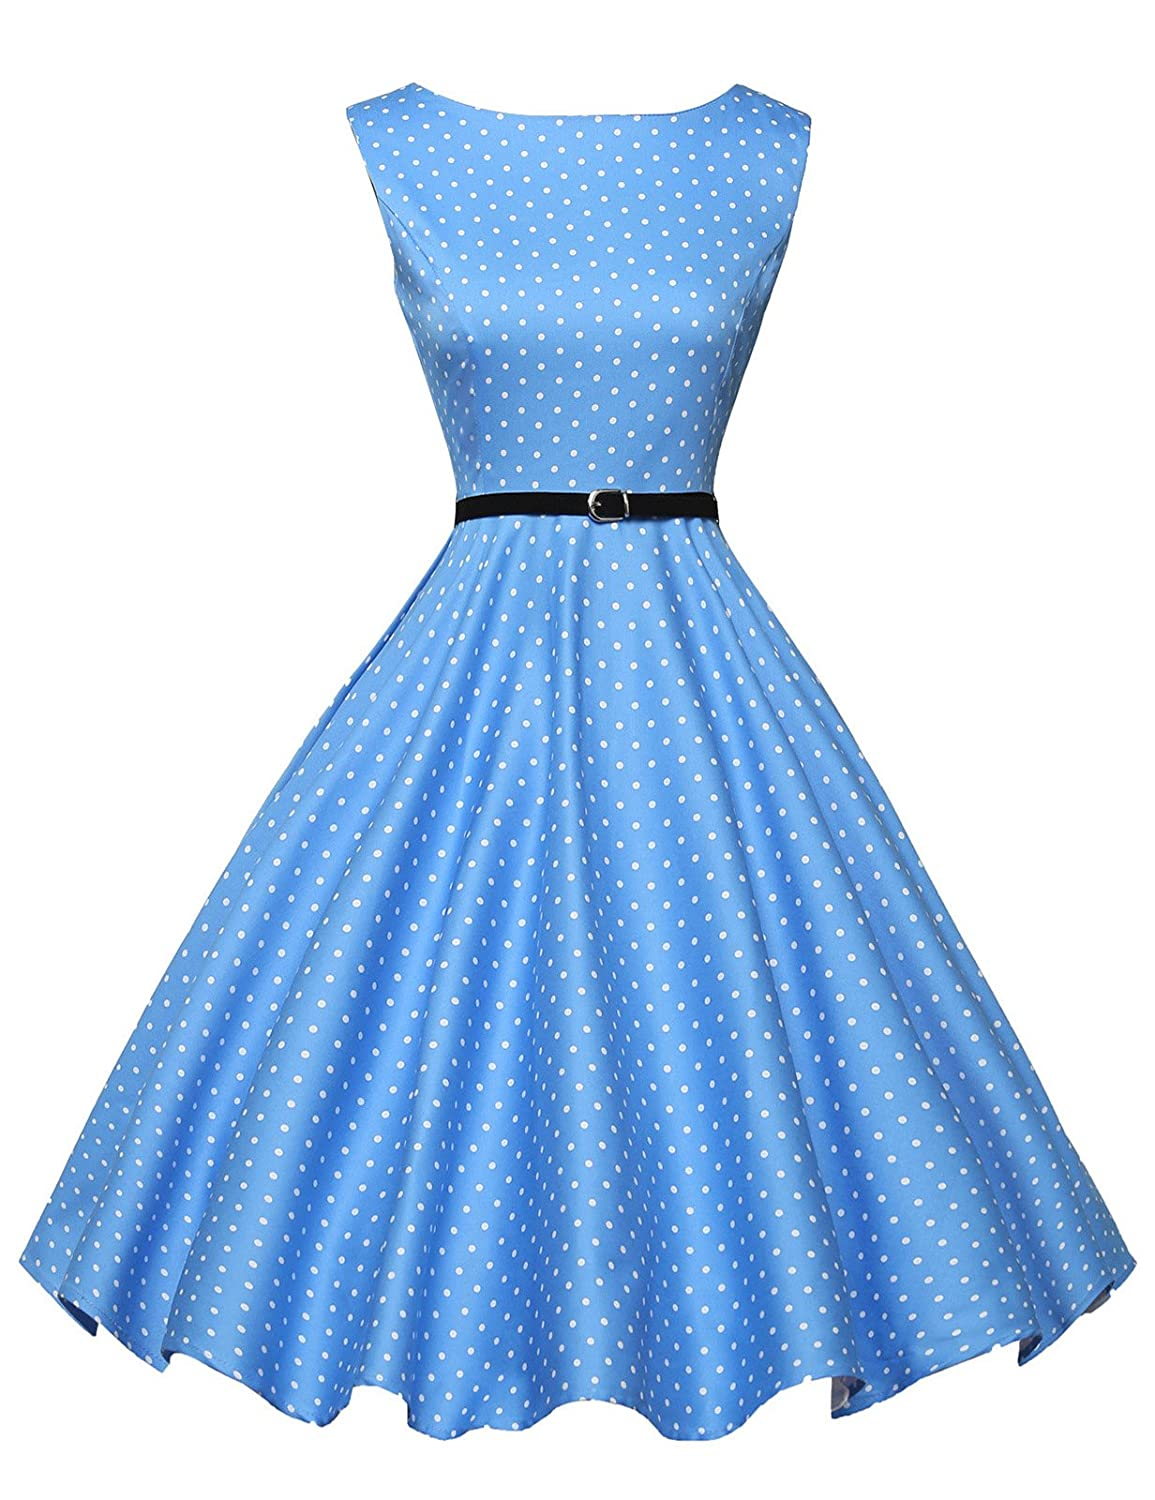 1960s Style Dresses- Retro Inspired Fashion GRACE KARIN BoatNeck Sleeveless Vintage Tea Dress with Belt $30.99 AT vintagedancer.com